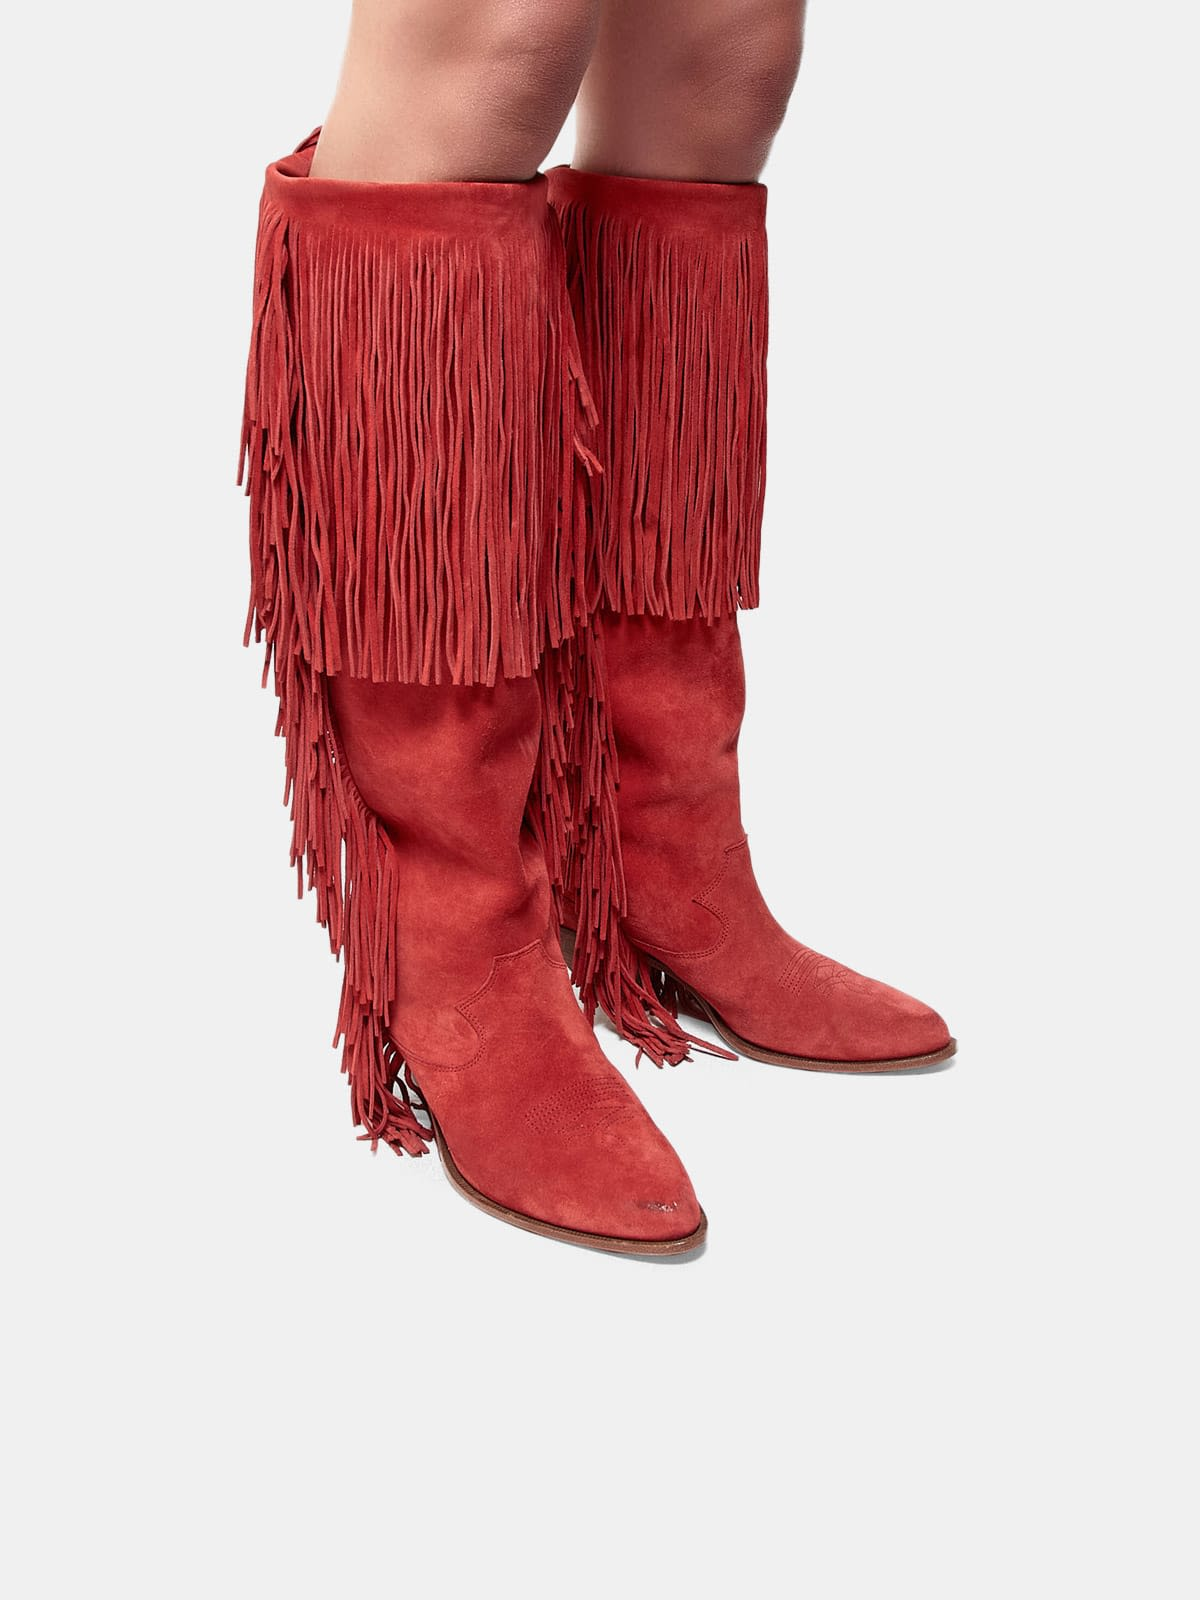 Levriero ankle boots in suede leather with fringes